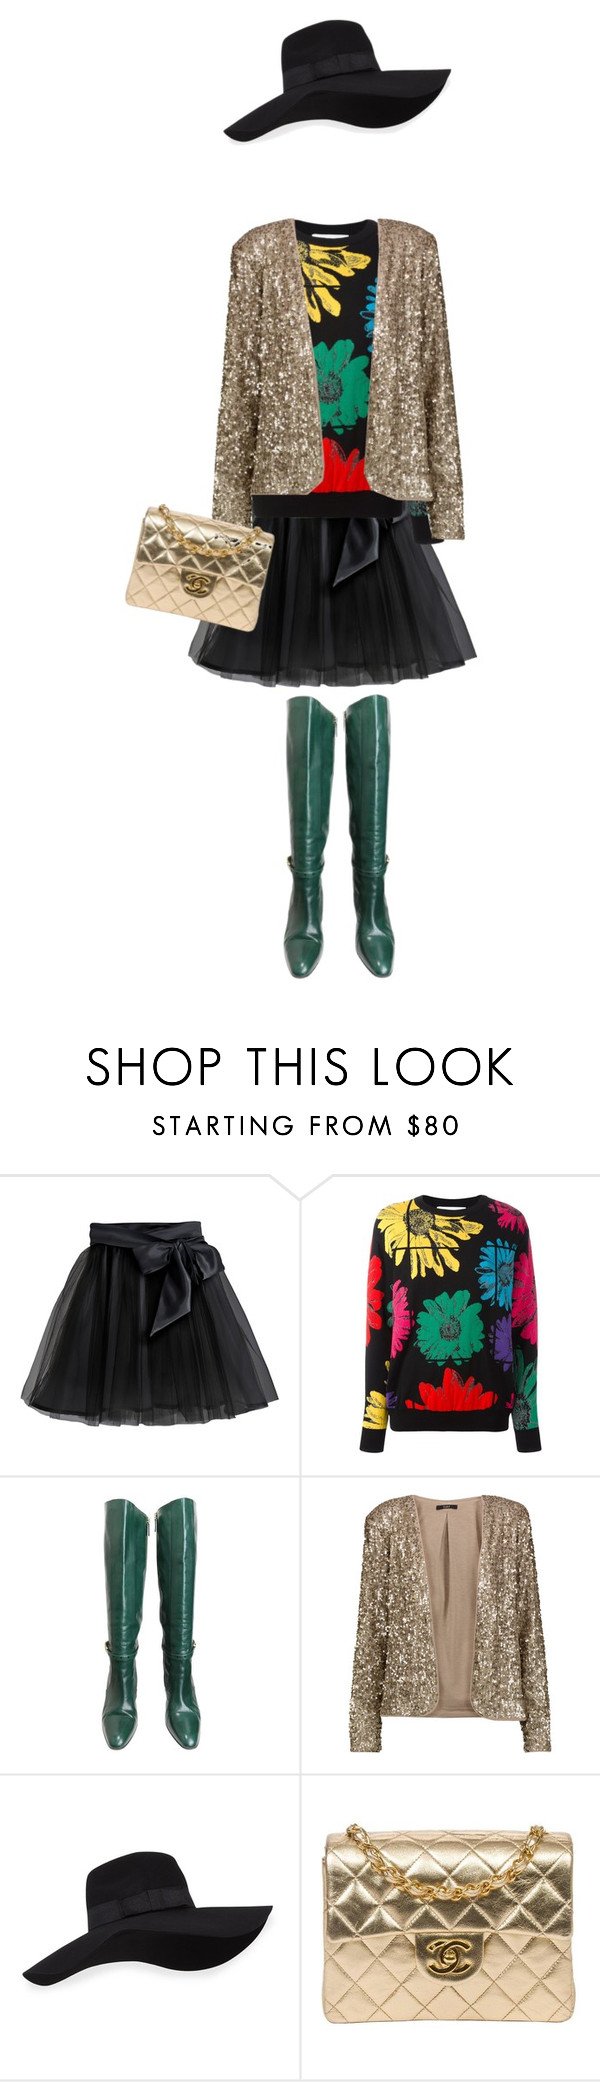 """evening style"" by lianafourmouzi ❤ liked on Polyvore featuring Little Wardrobe London, Moschino, Gucci, Tart, San Diego Hat Co. and Chanel"